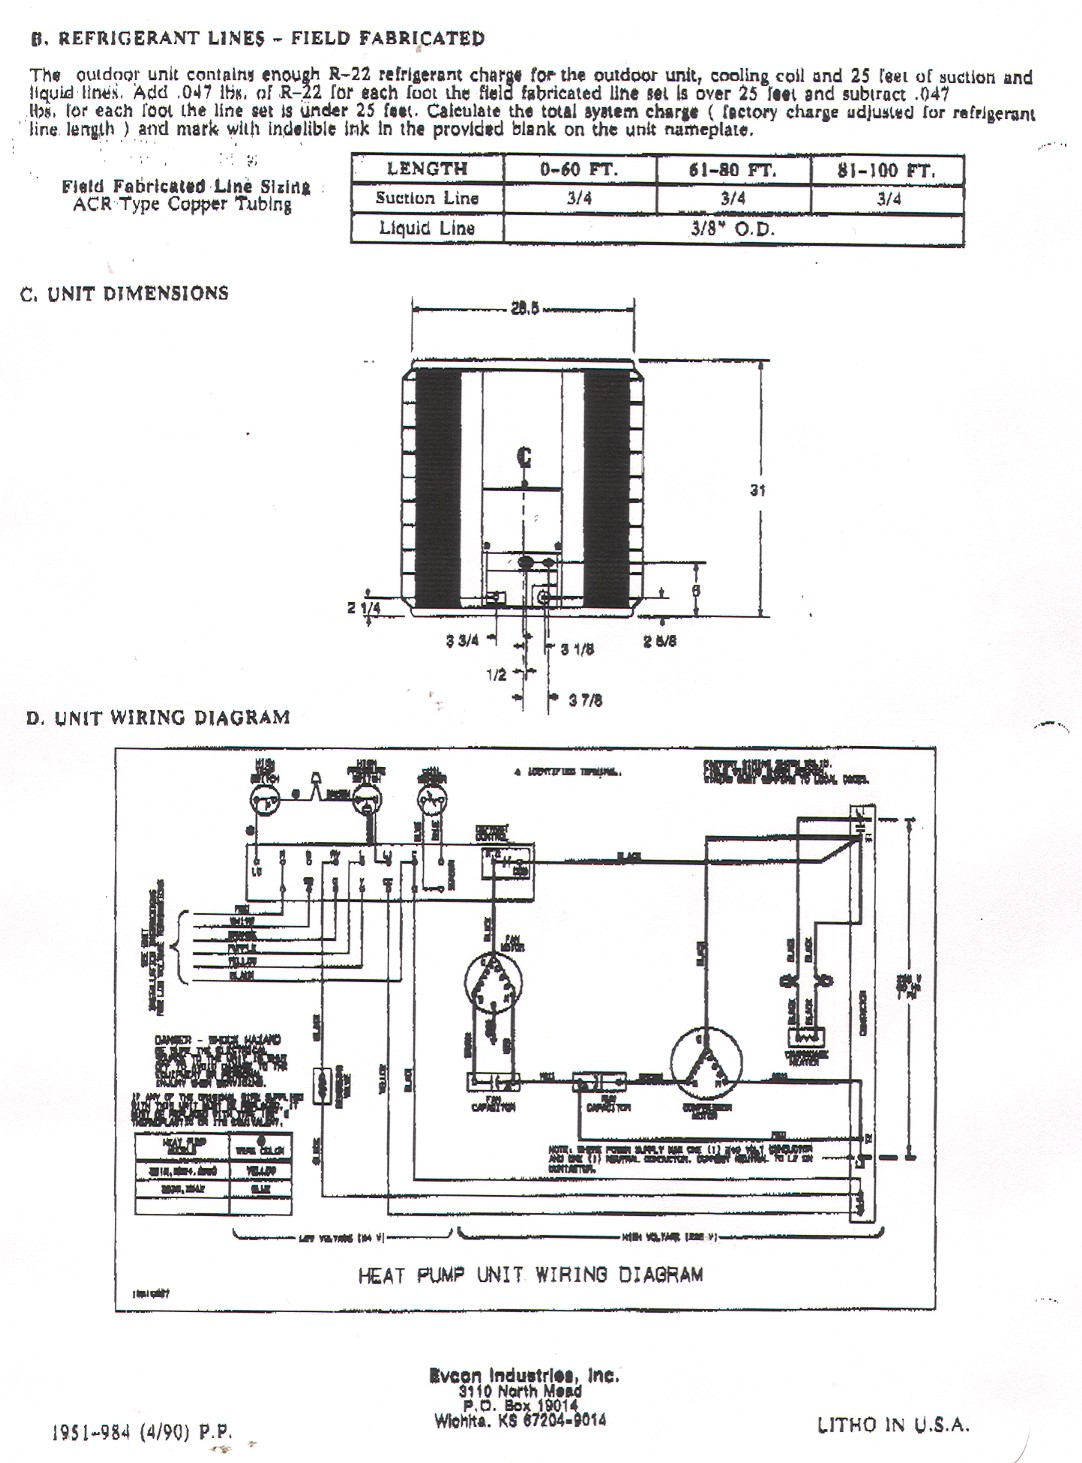 Electric Heat Pump Wiring Diagram | Wiring Diagram - Heat Pump Wiring Diagram Schematic